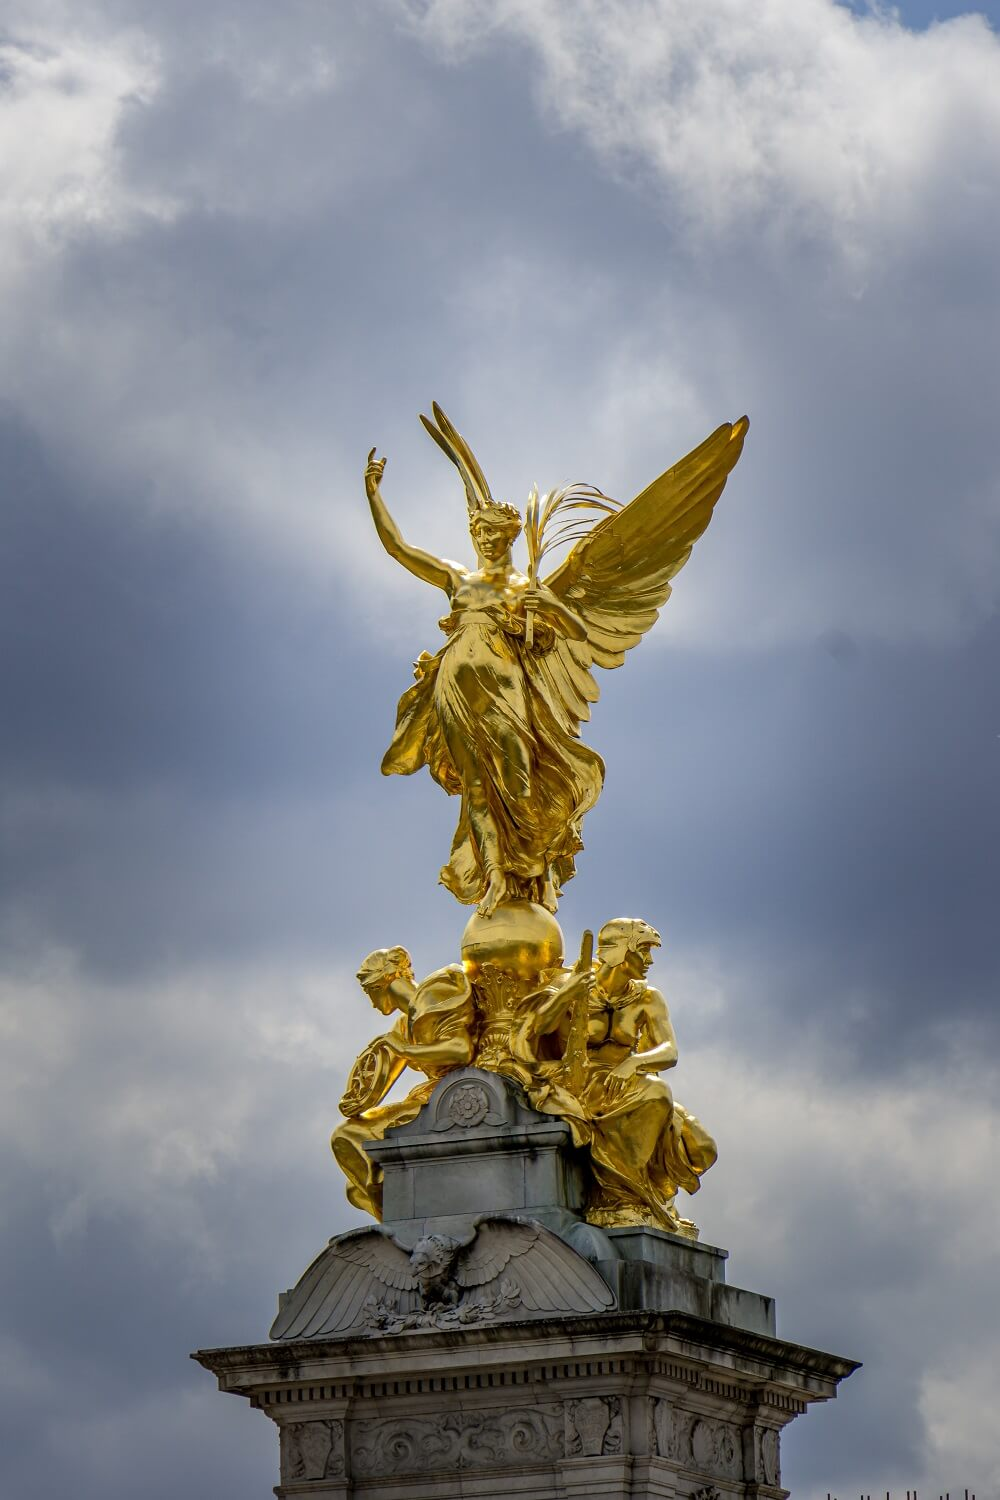 top of the Victoria memorial in front of Buckingham Palace